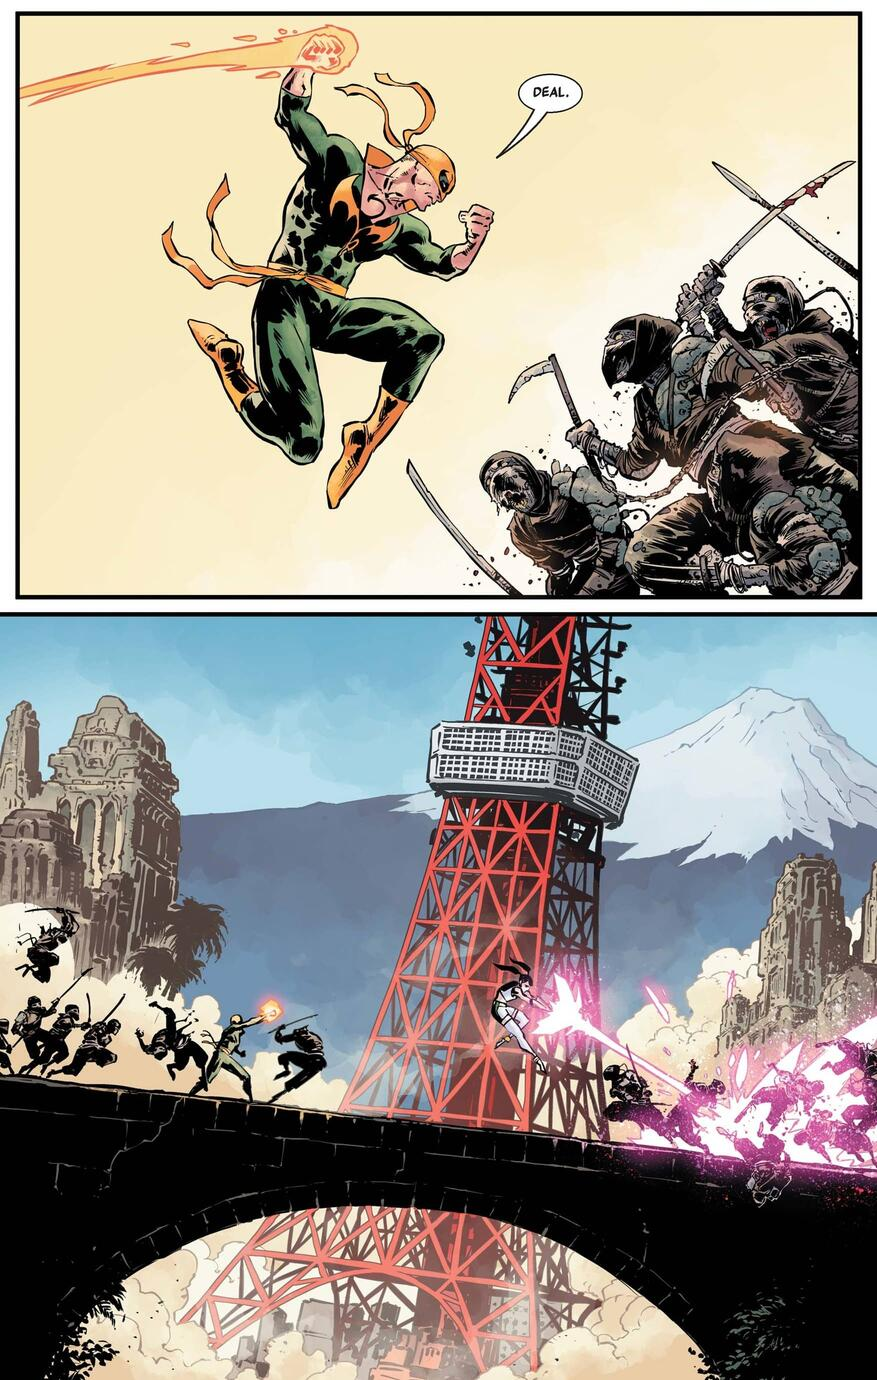 Danny Rand: Iron Fist versus a zombie horde.